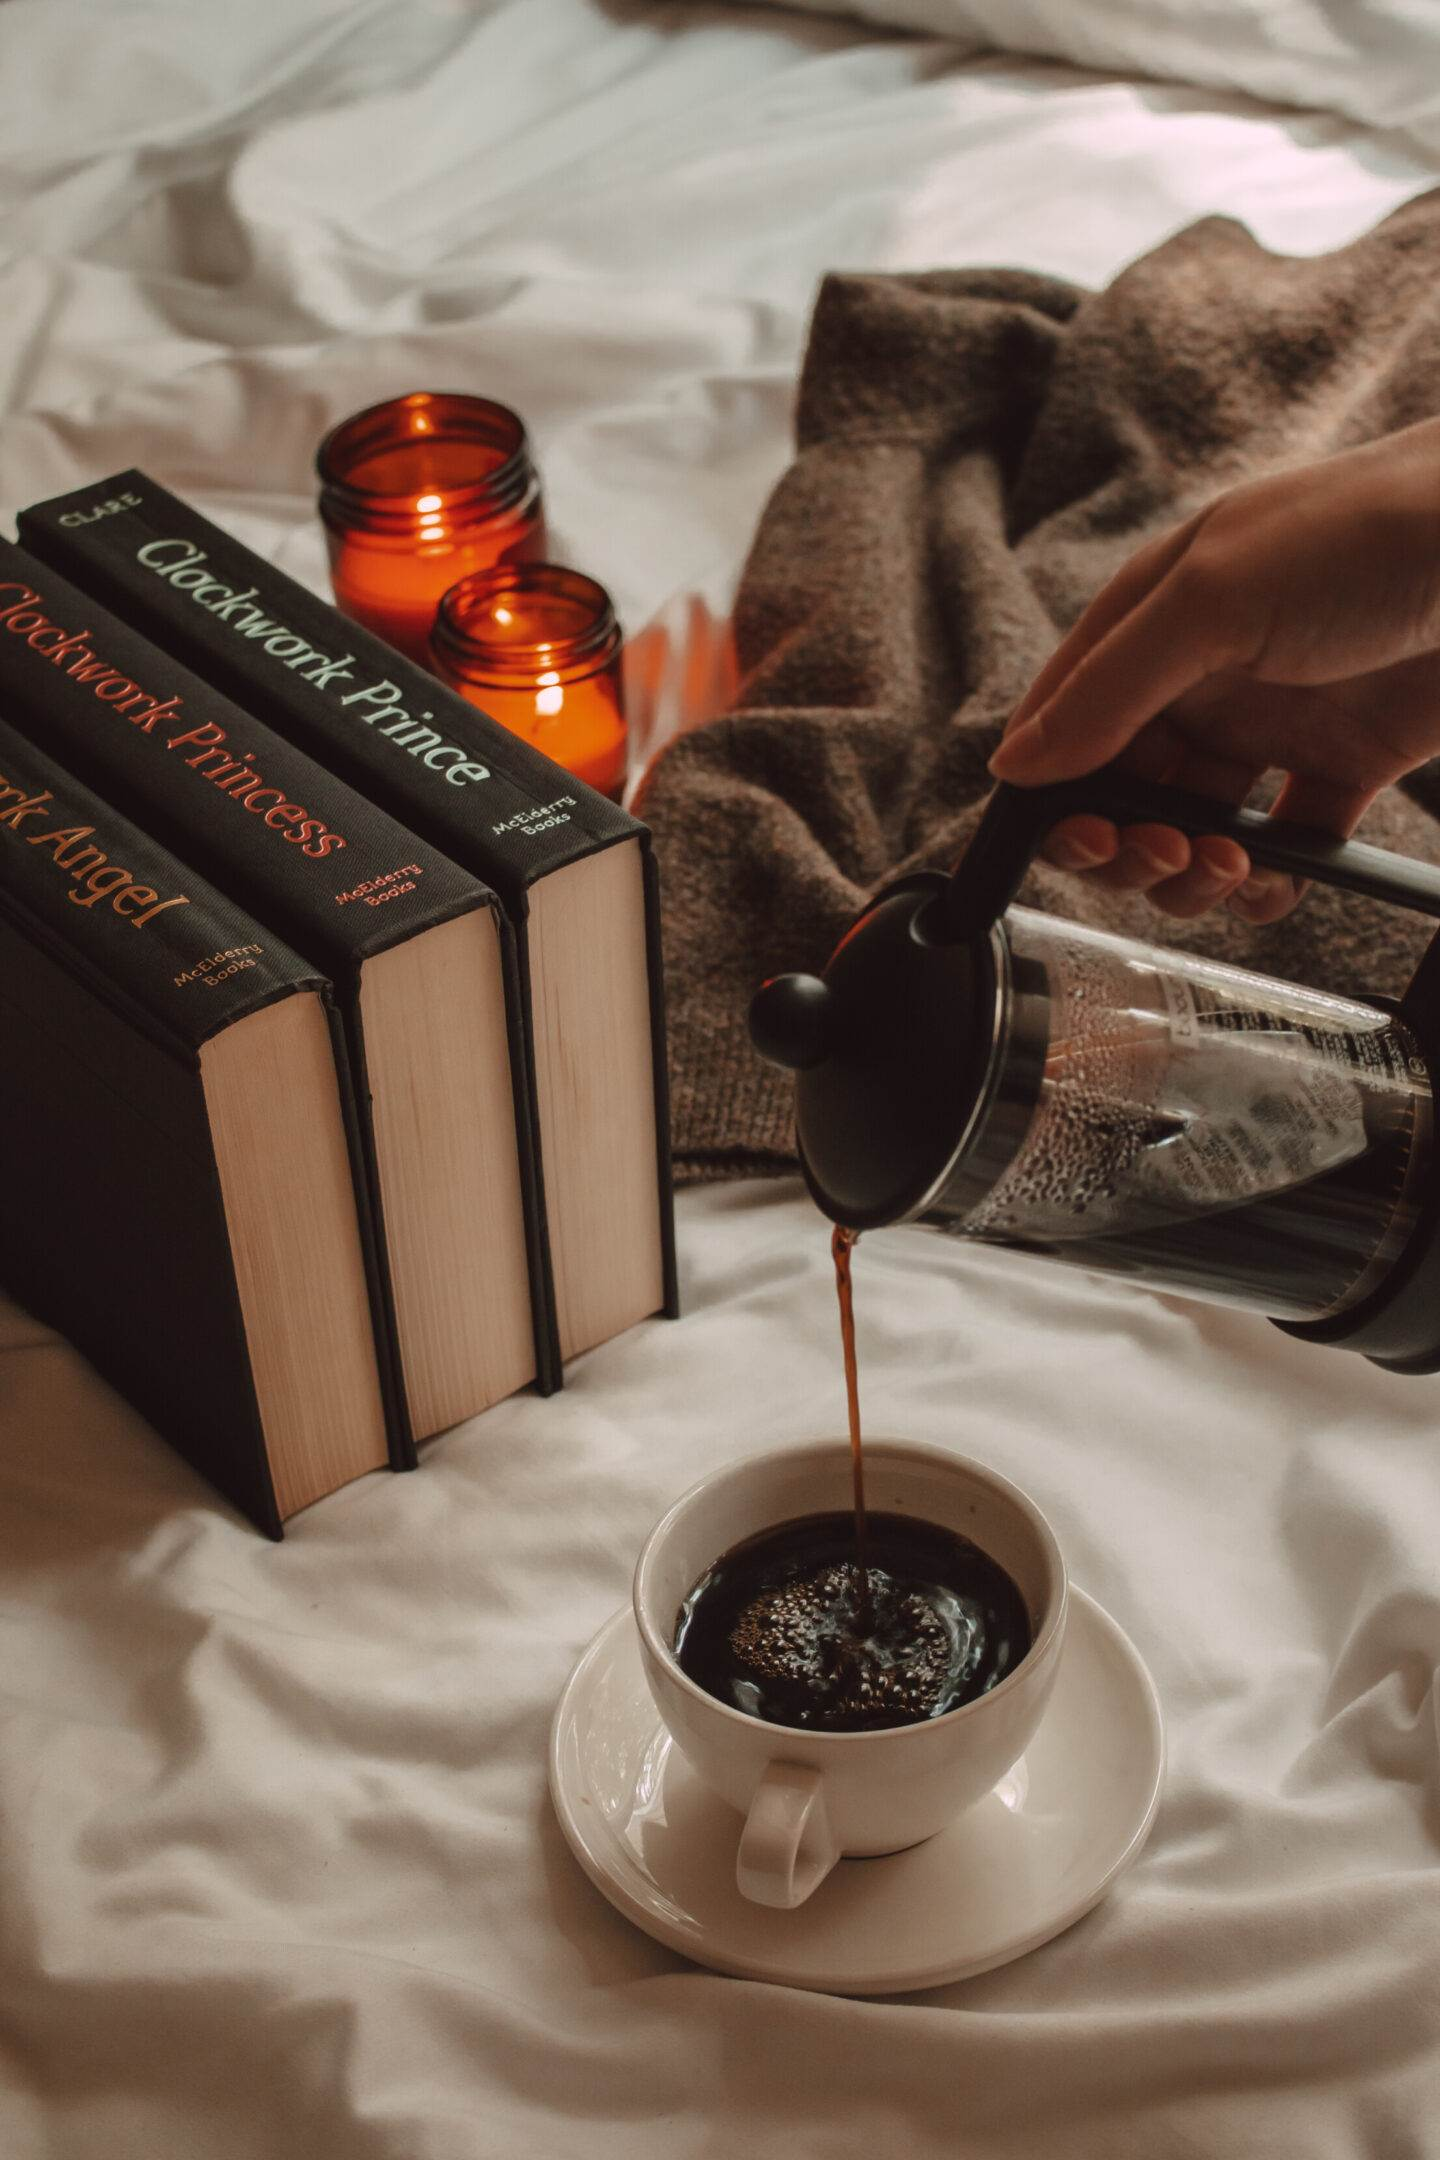 pouring black coffee from a french press into a mug with The Infernal Devices trilogy of books nearby and two lit candles